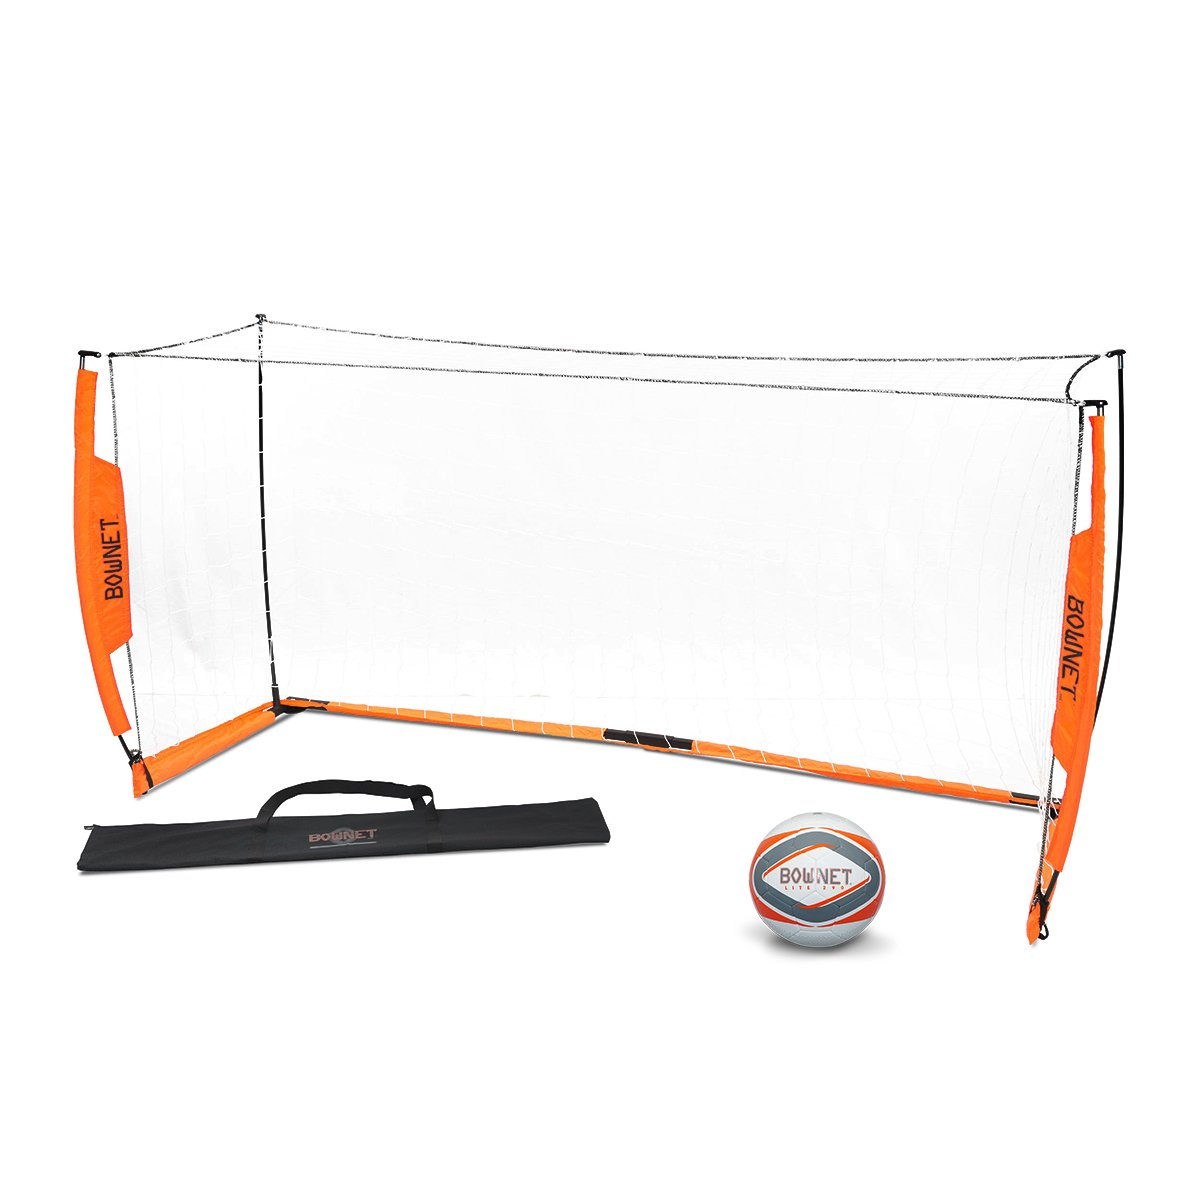 BUNDLE PACK - Bownet 4' x 8' Soccer Goal with Free Lite Soccer Ball, Size 4